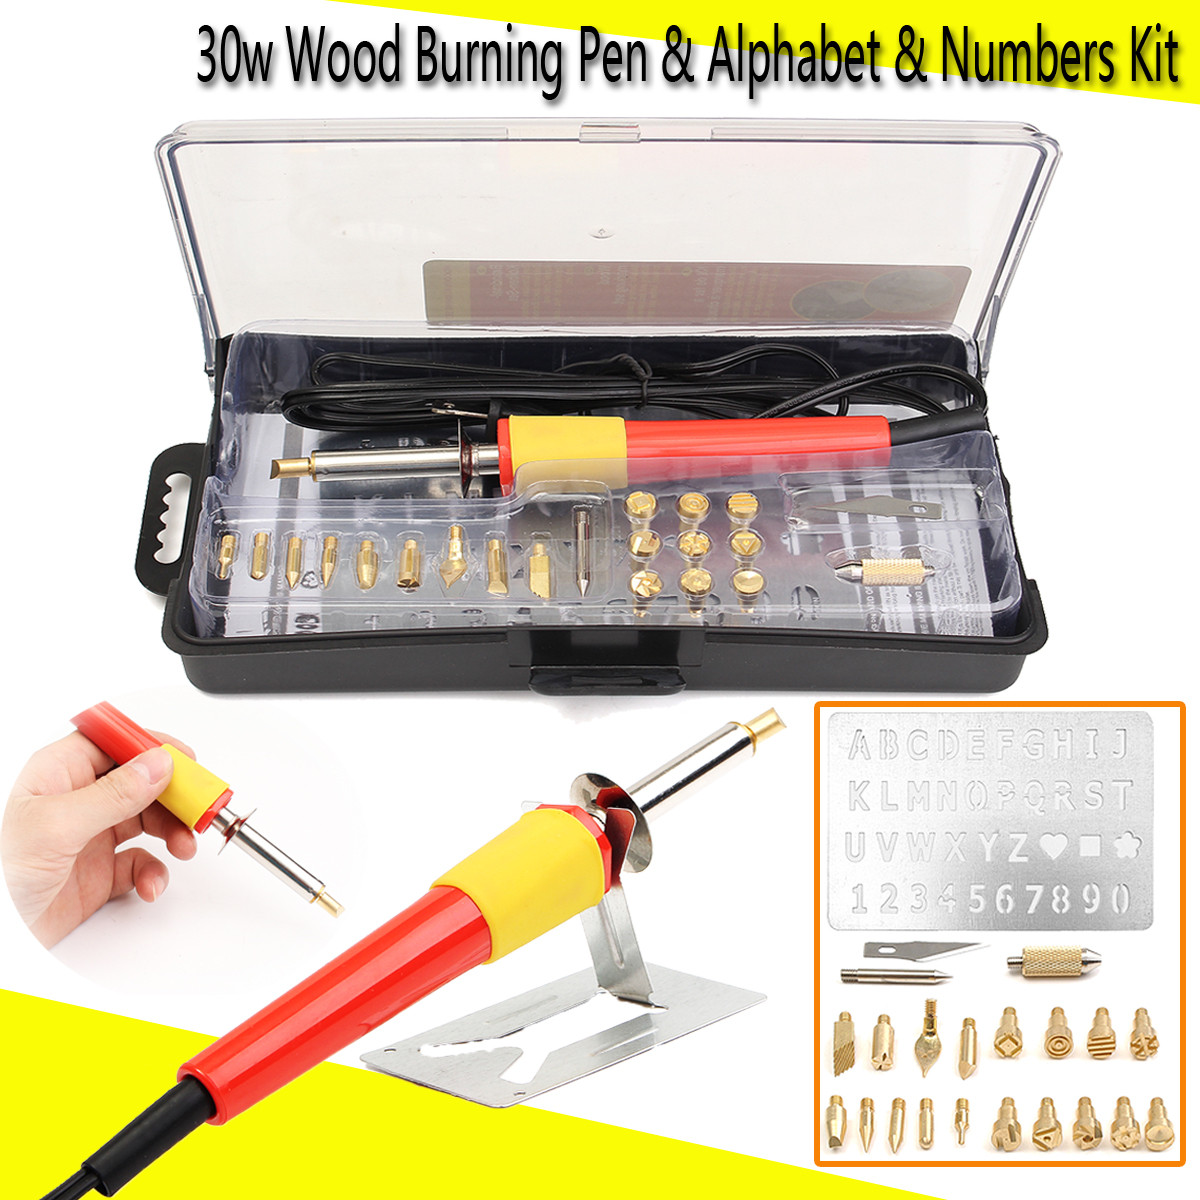 Wood Burning PYROGRAPHY SET Pen Tips Art Crafts Tools Kit ALPHABET NUMBERS